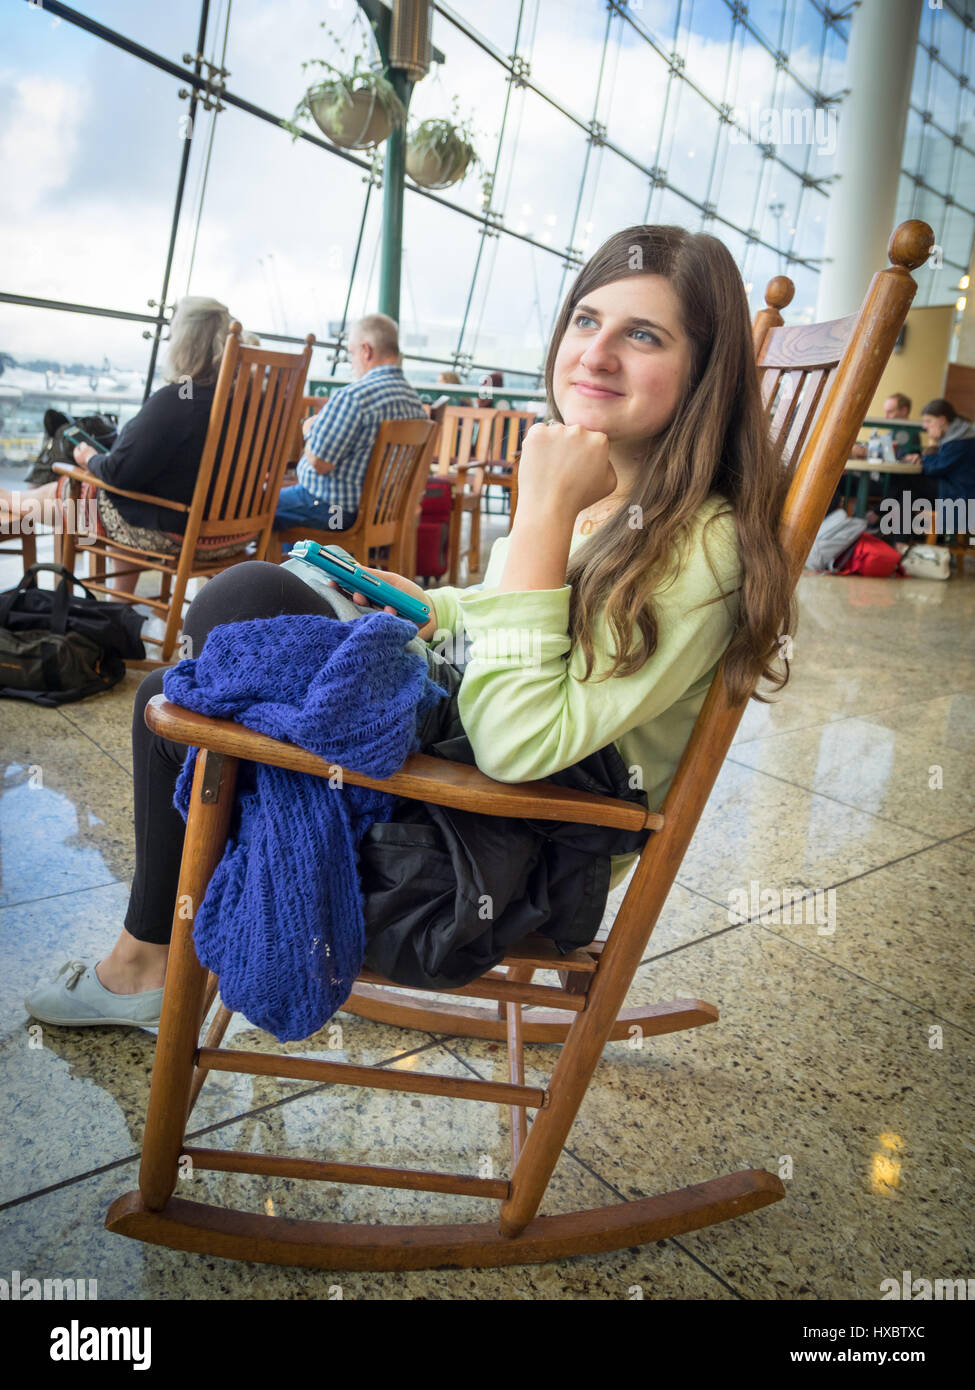 A girl sits on a rocking chair in the Pacific Marketplace of the Central Terminal of Seattle-Tacoma International - Stock Image